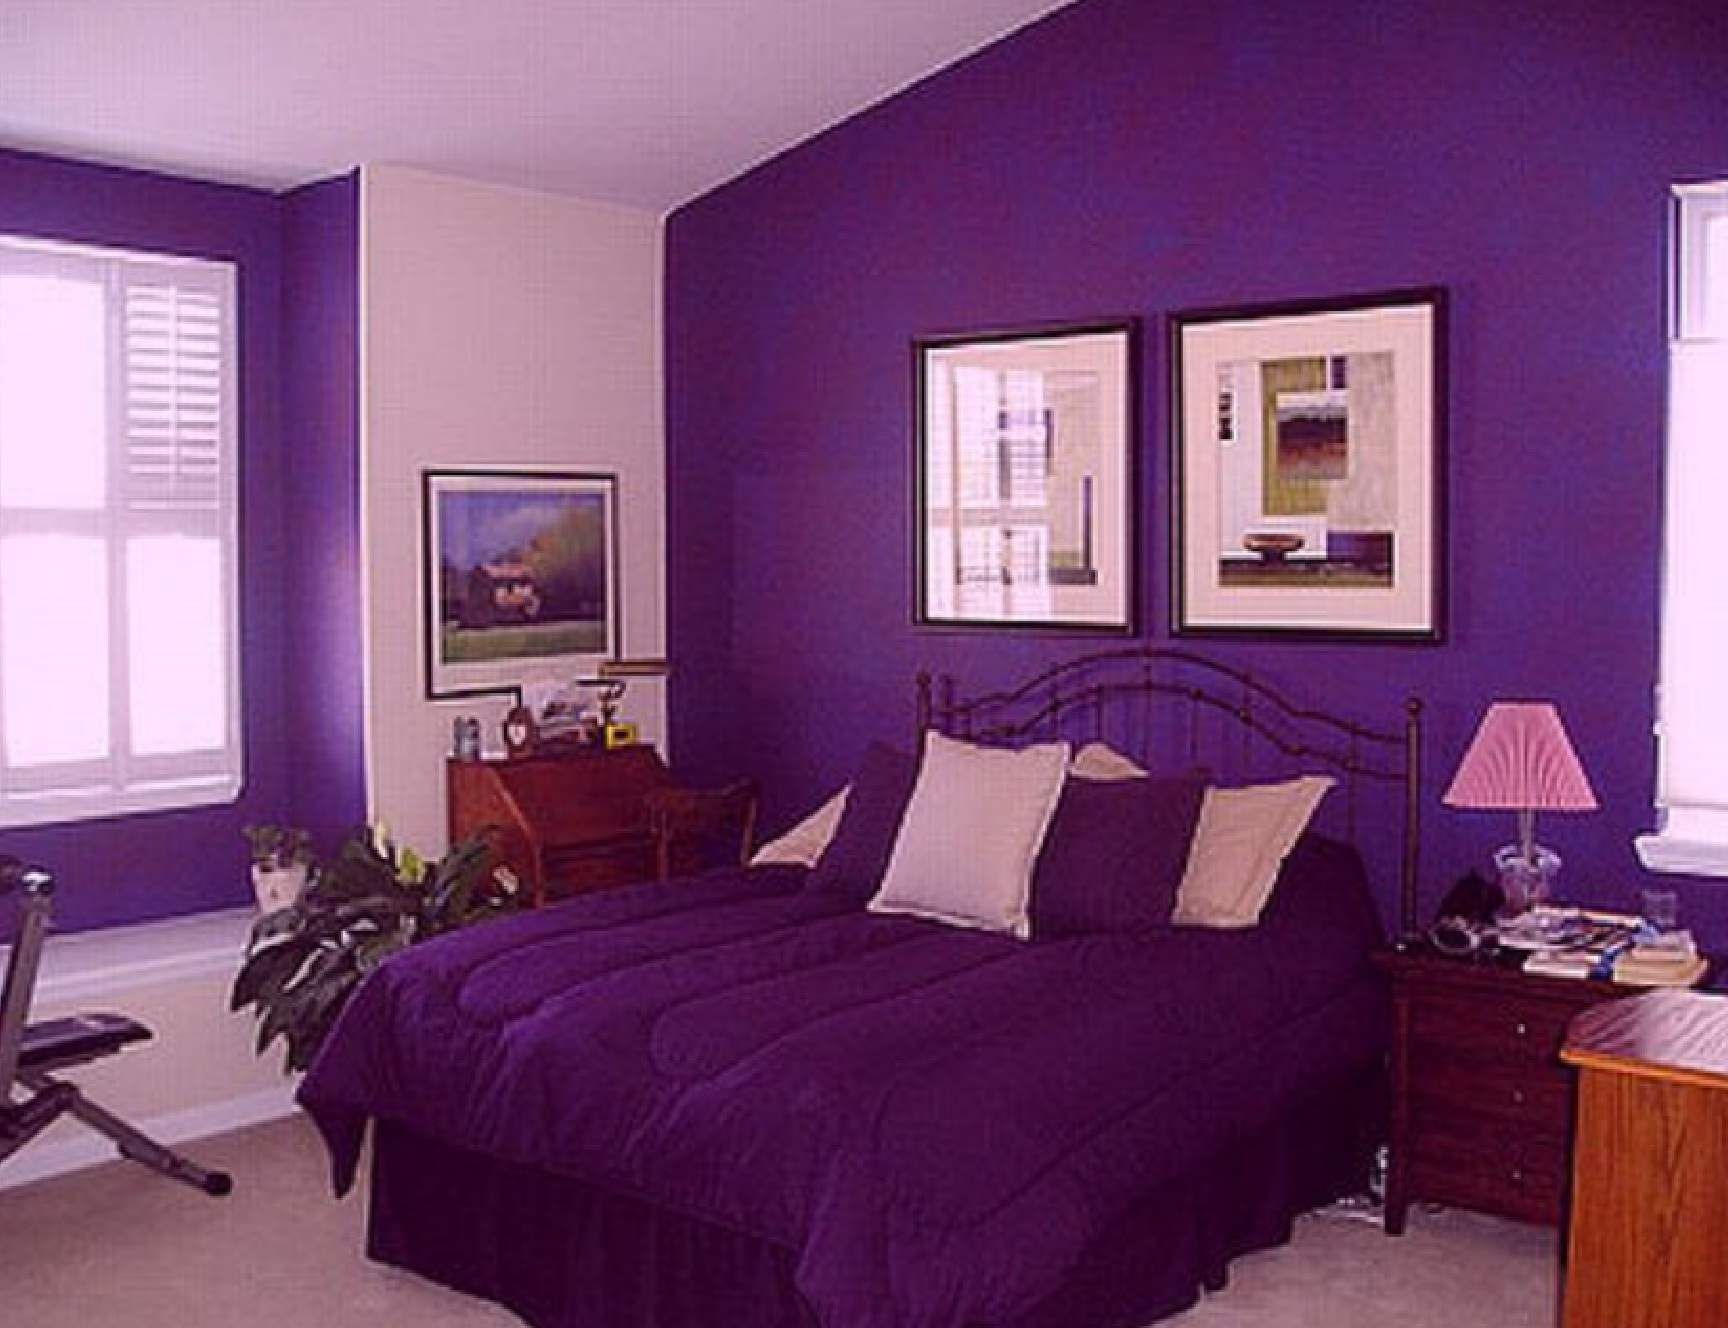 Charmant Room · Purple Bed Room Ideas ...